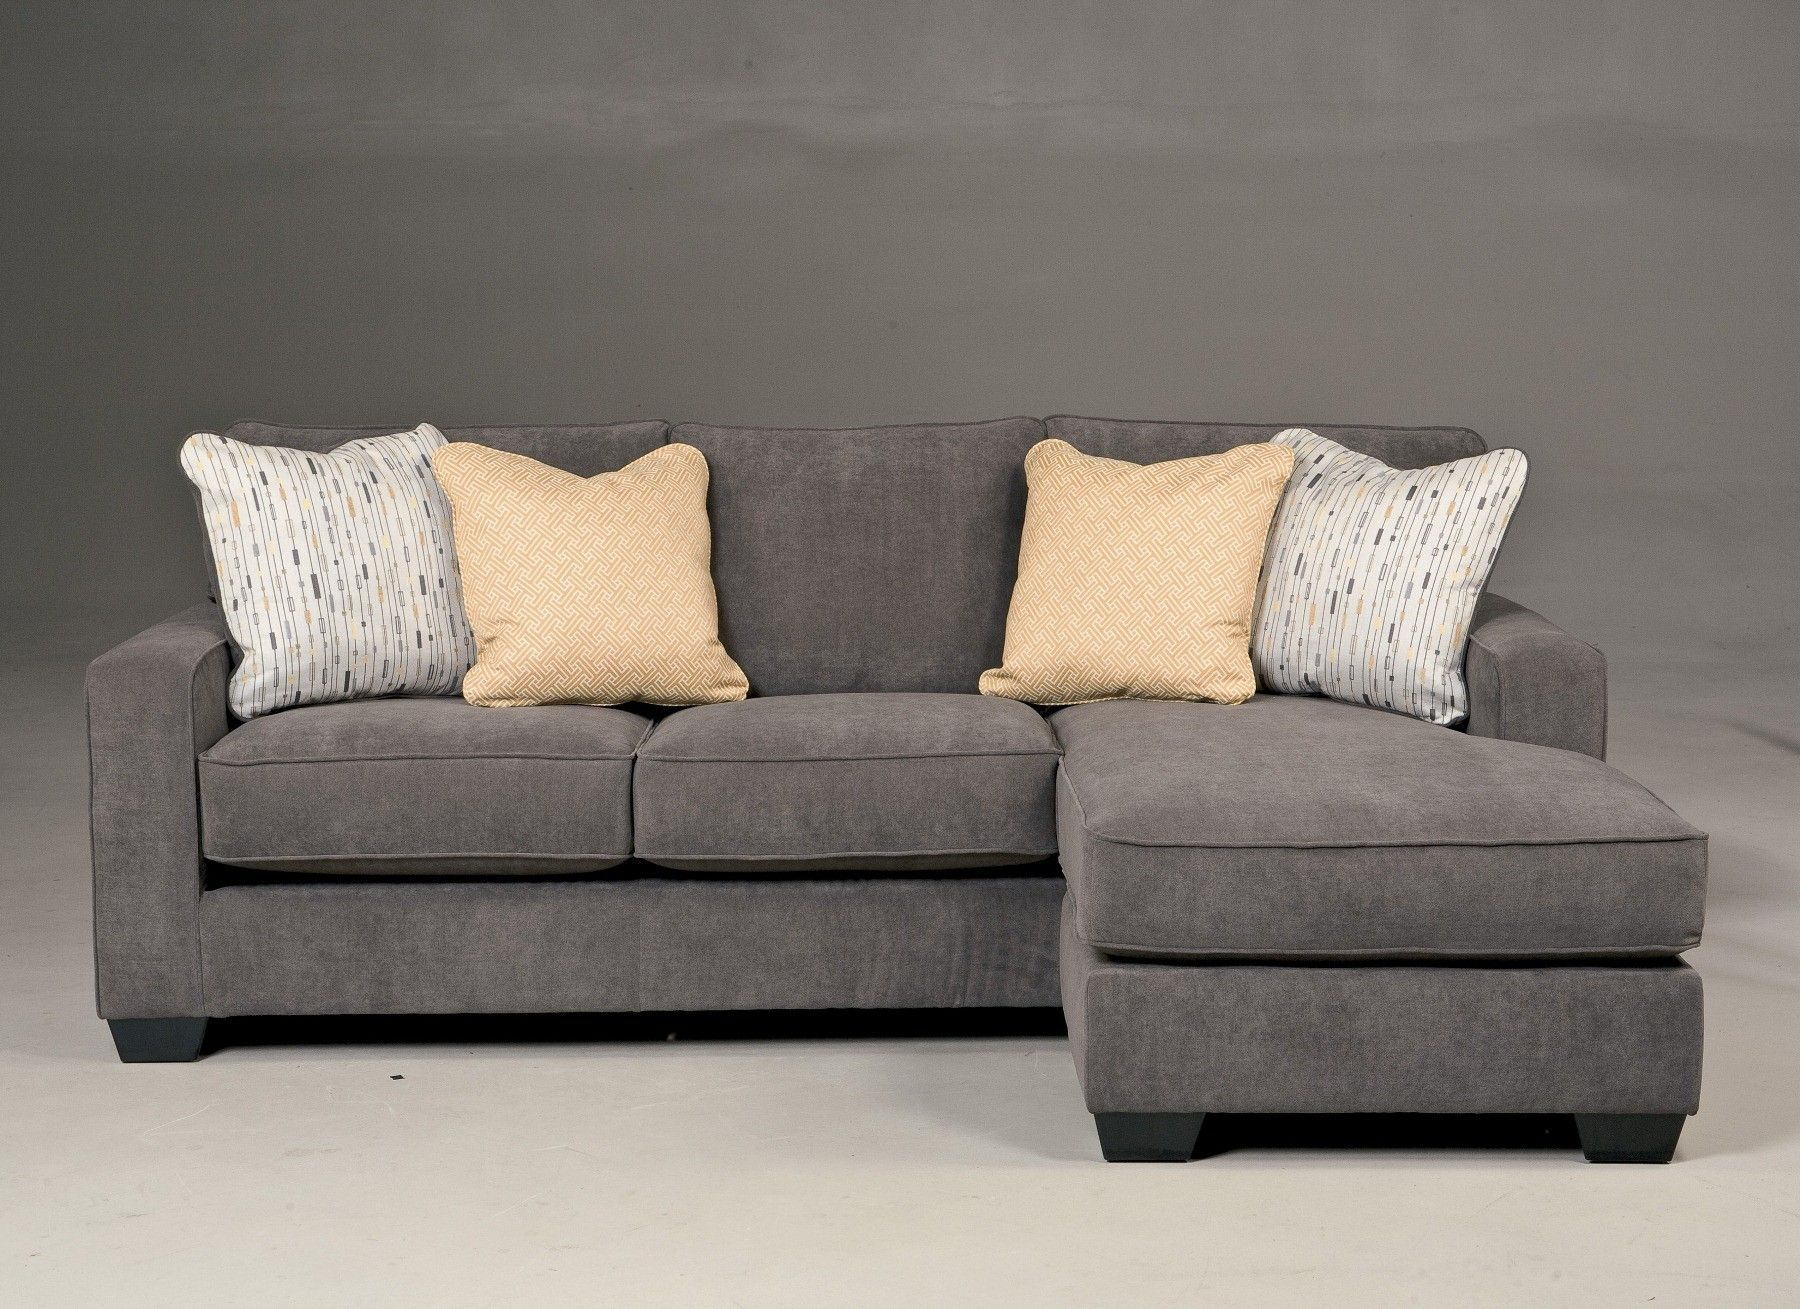 Hodan Marble Sofa With Chaise Sofas For Small Spaces Living Room Sofa Couch With Chaise